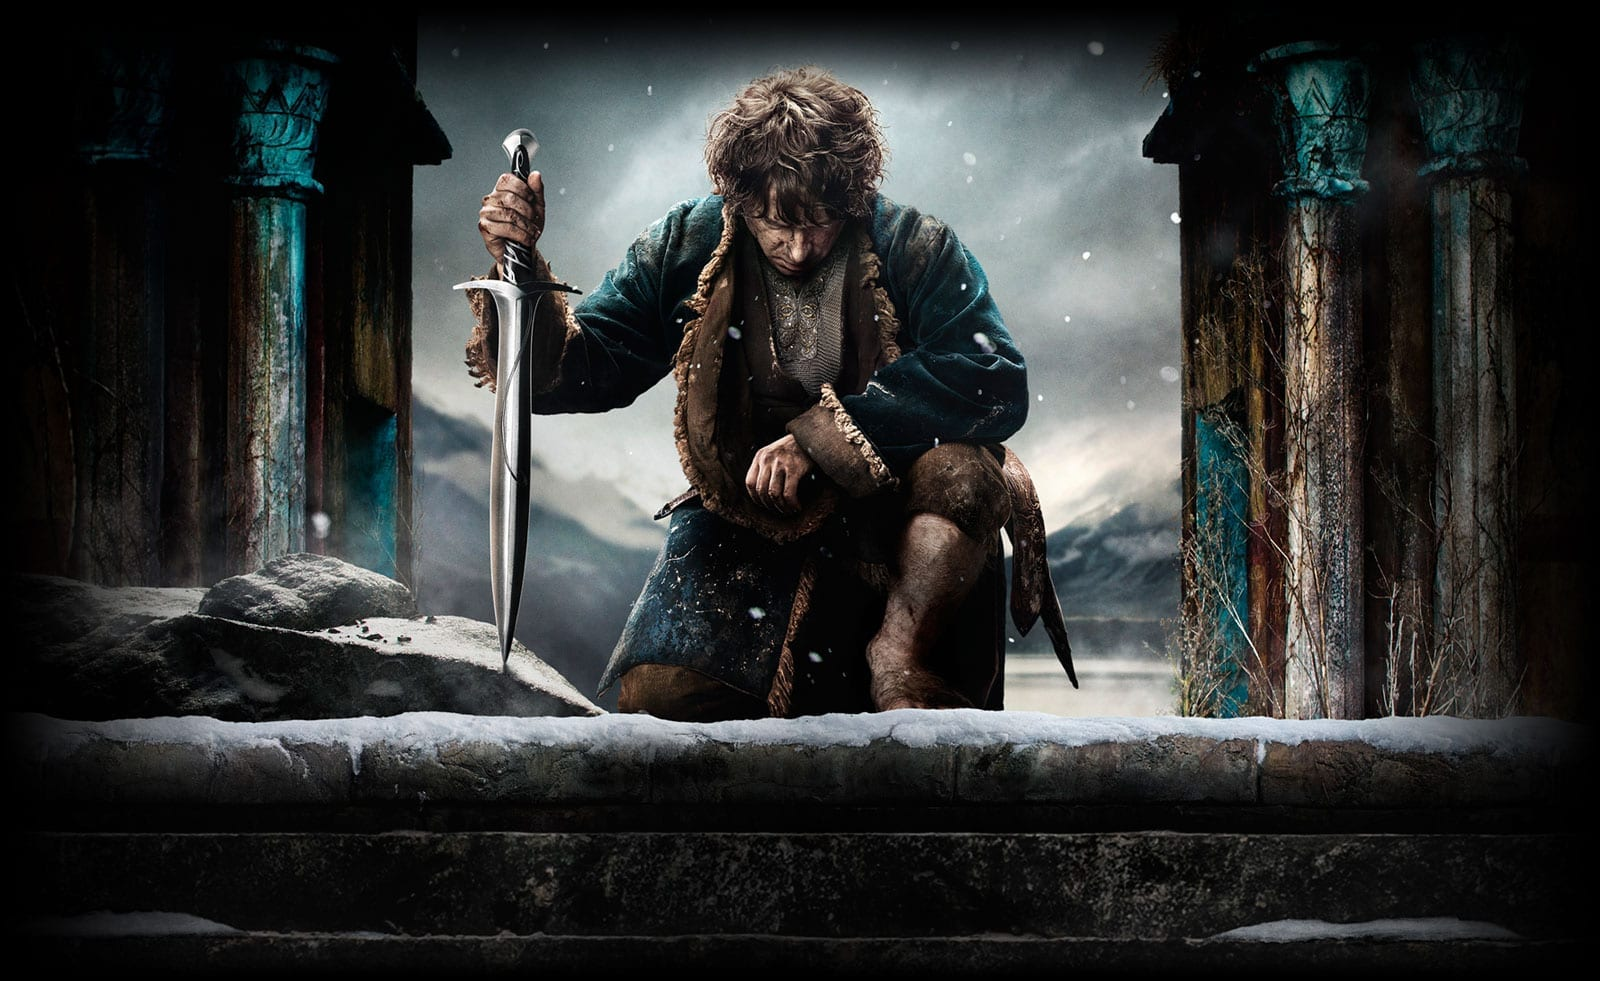 Film Review: The Hobbit: The Battle of the Five Armies